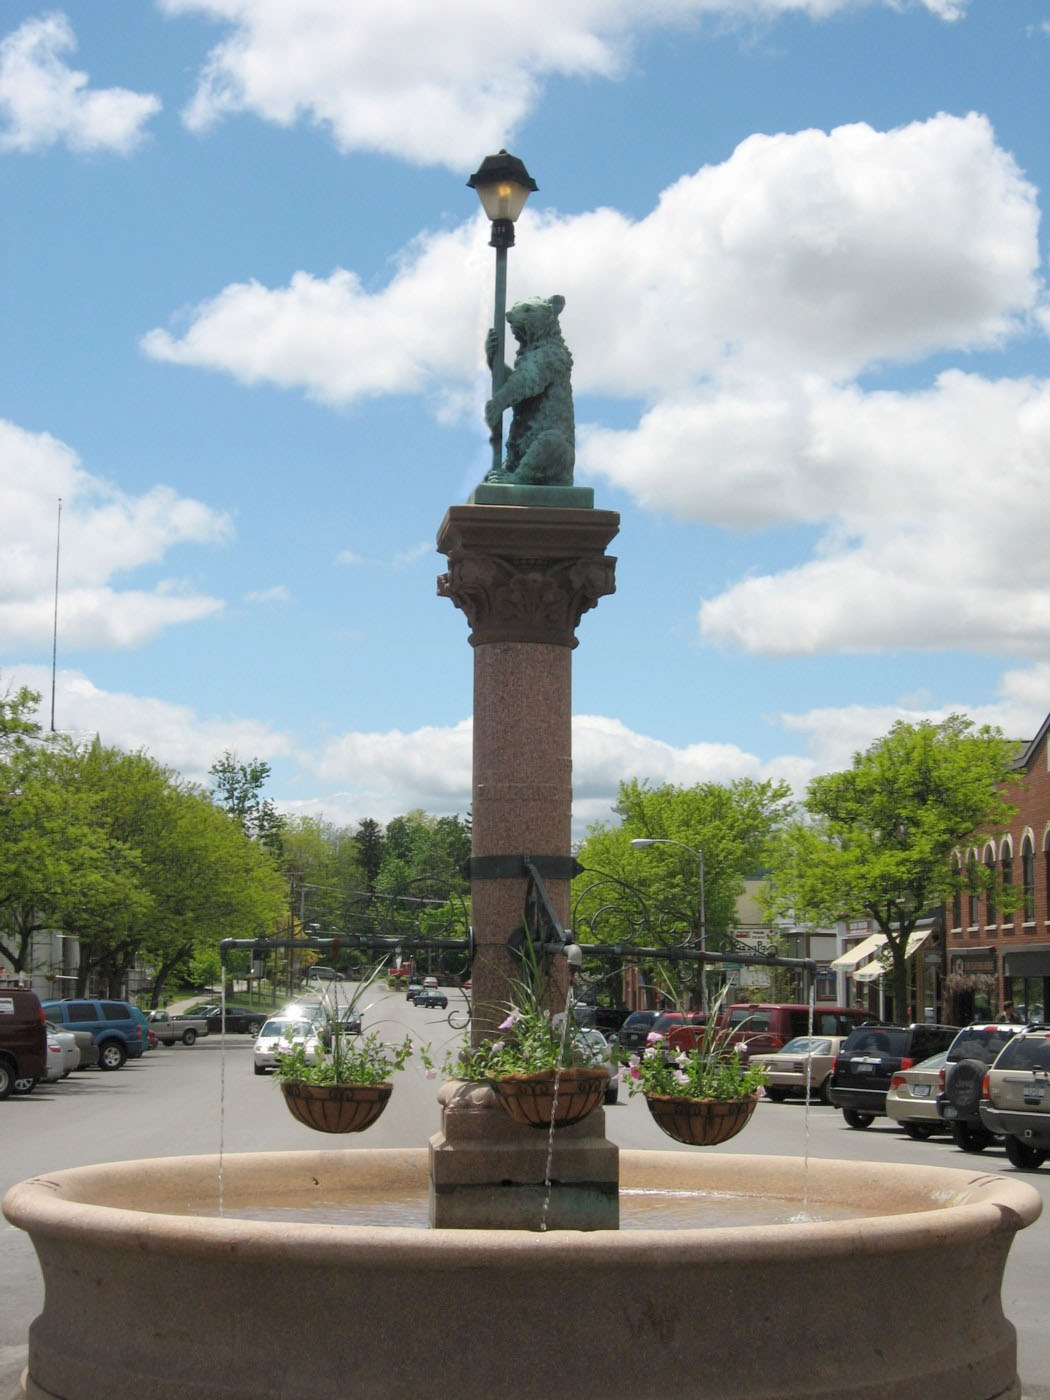 The Wadsworth Fountain in 2008